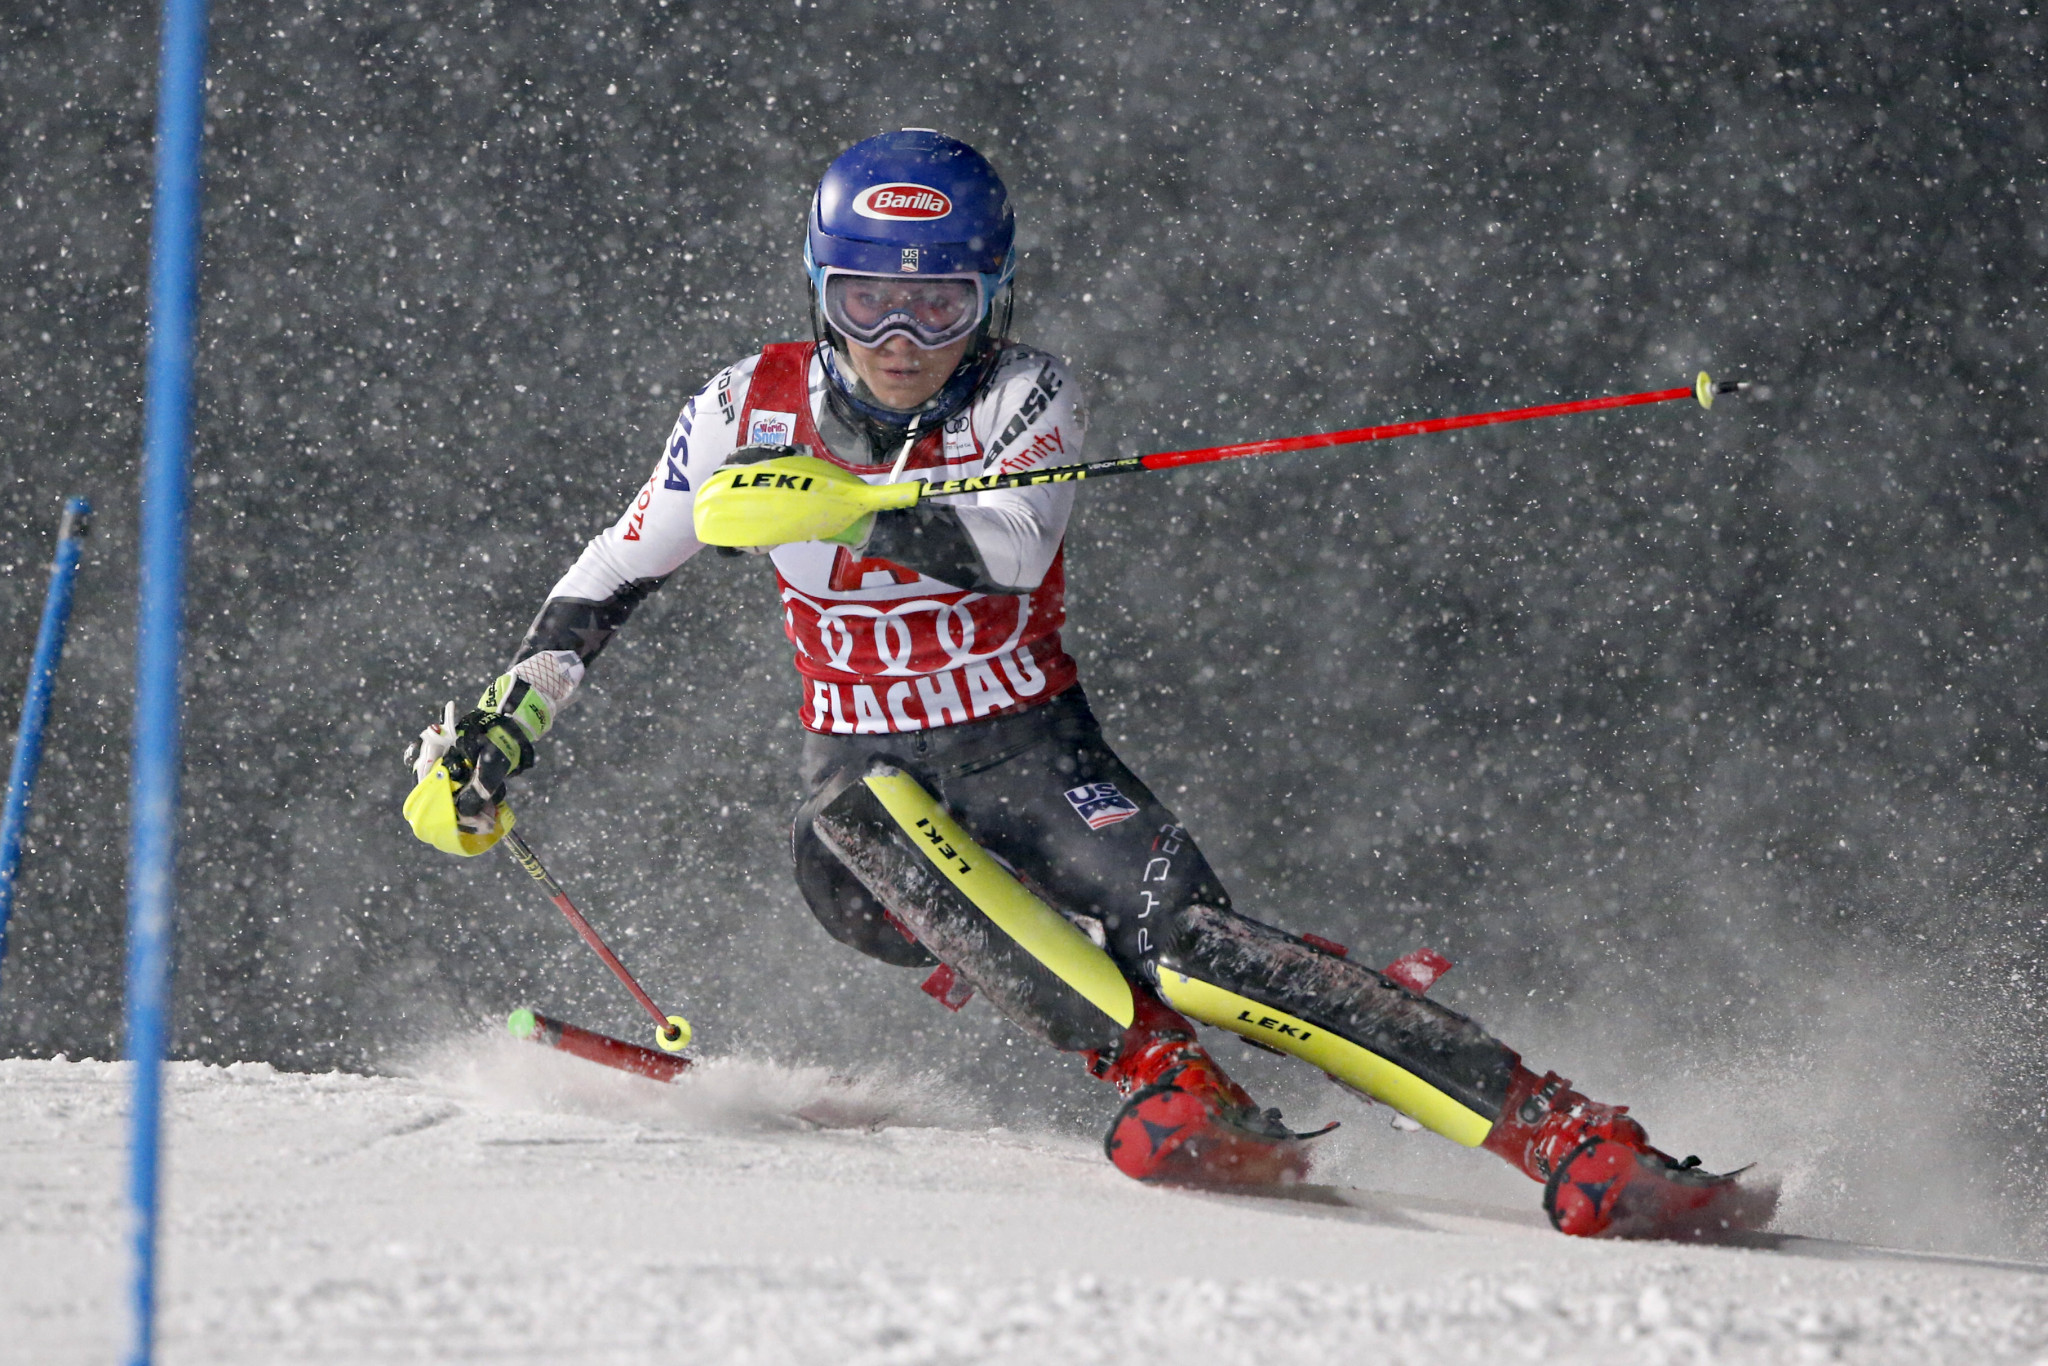 Mikaela Shiffrin initially led but could not match Petra Vlhova on the second run ©Getty Images